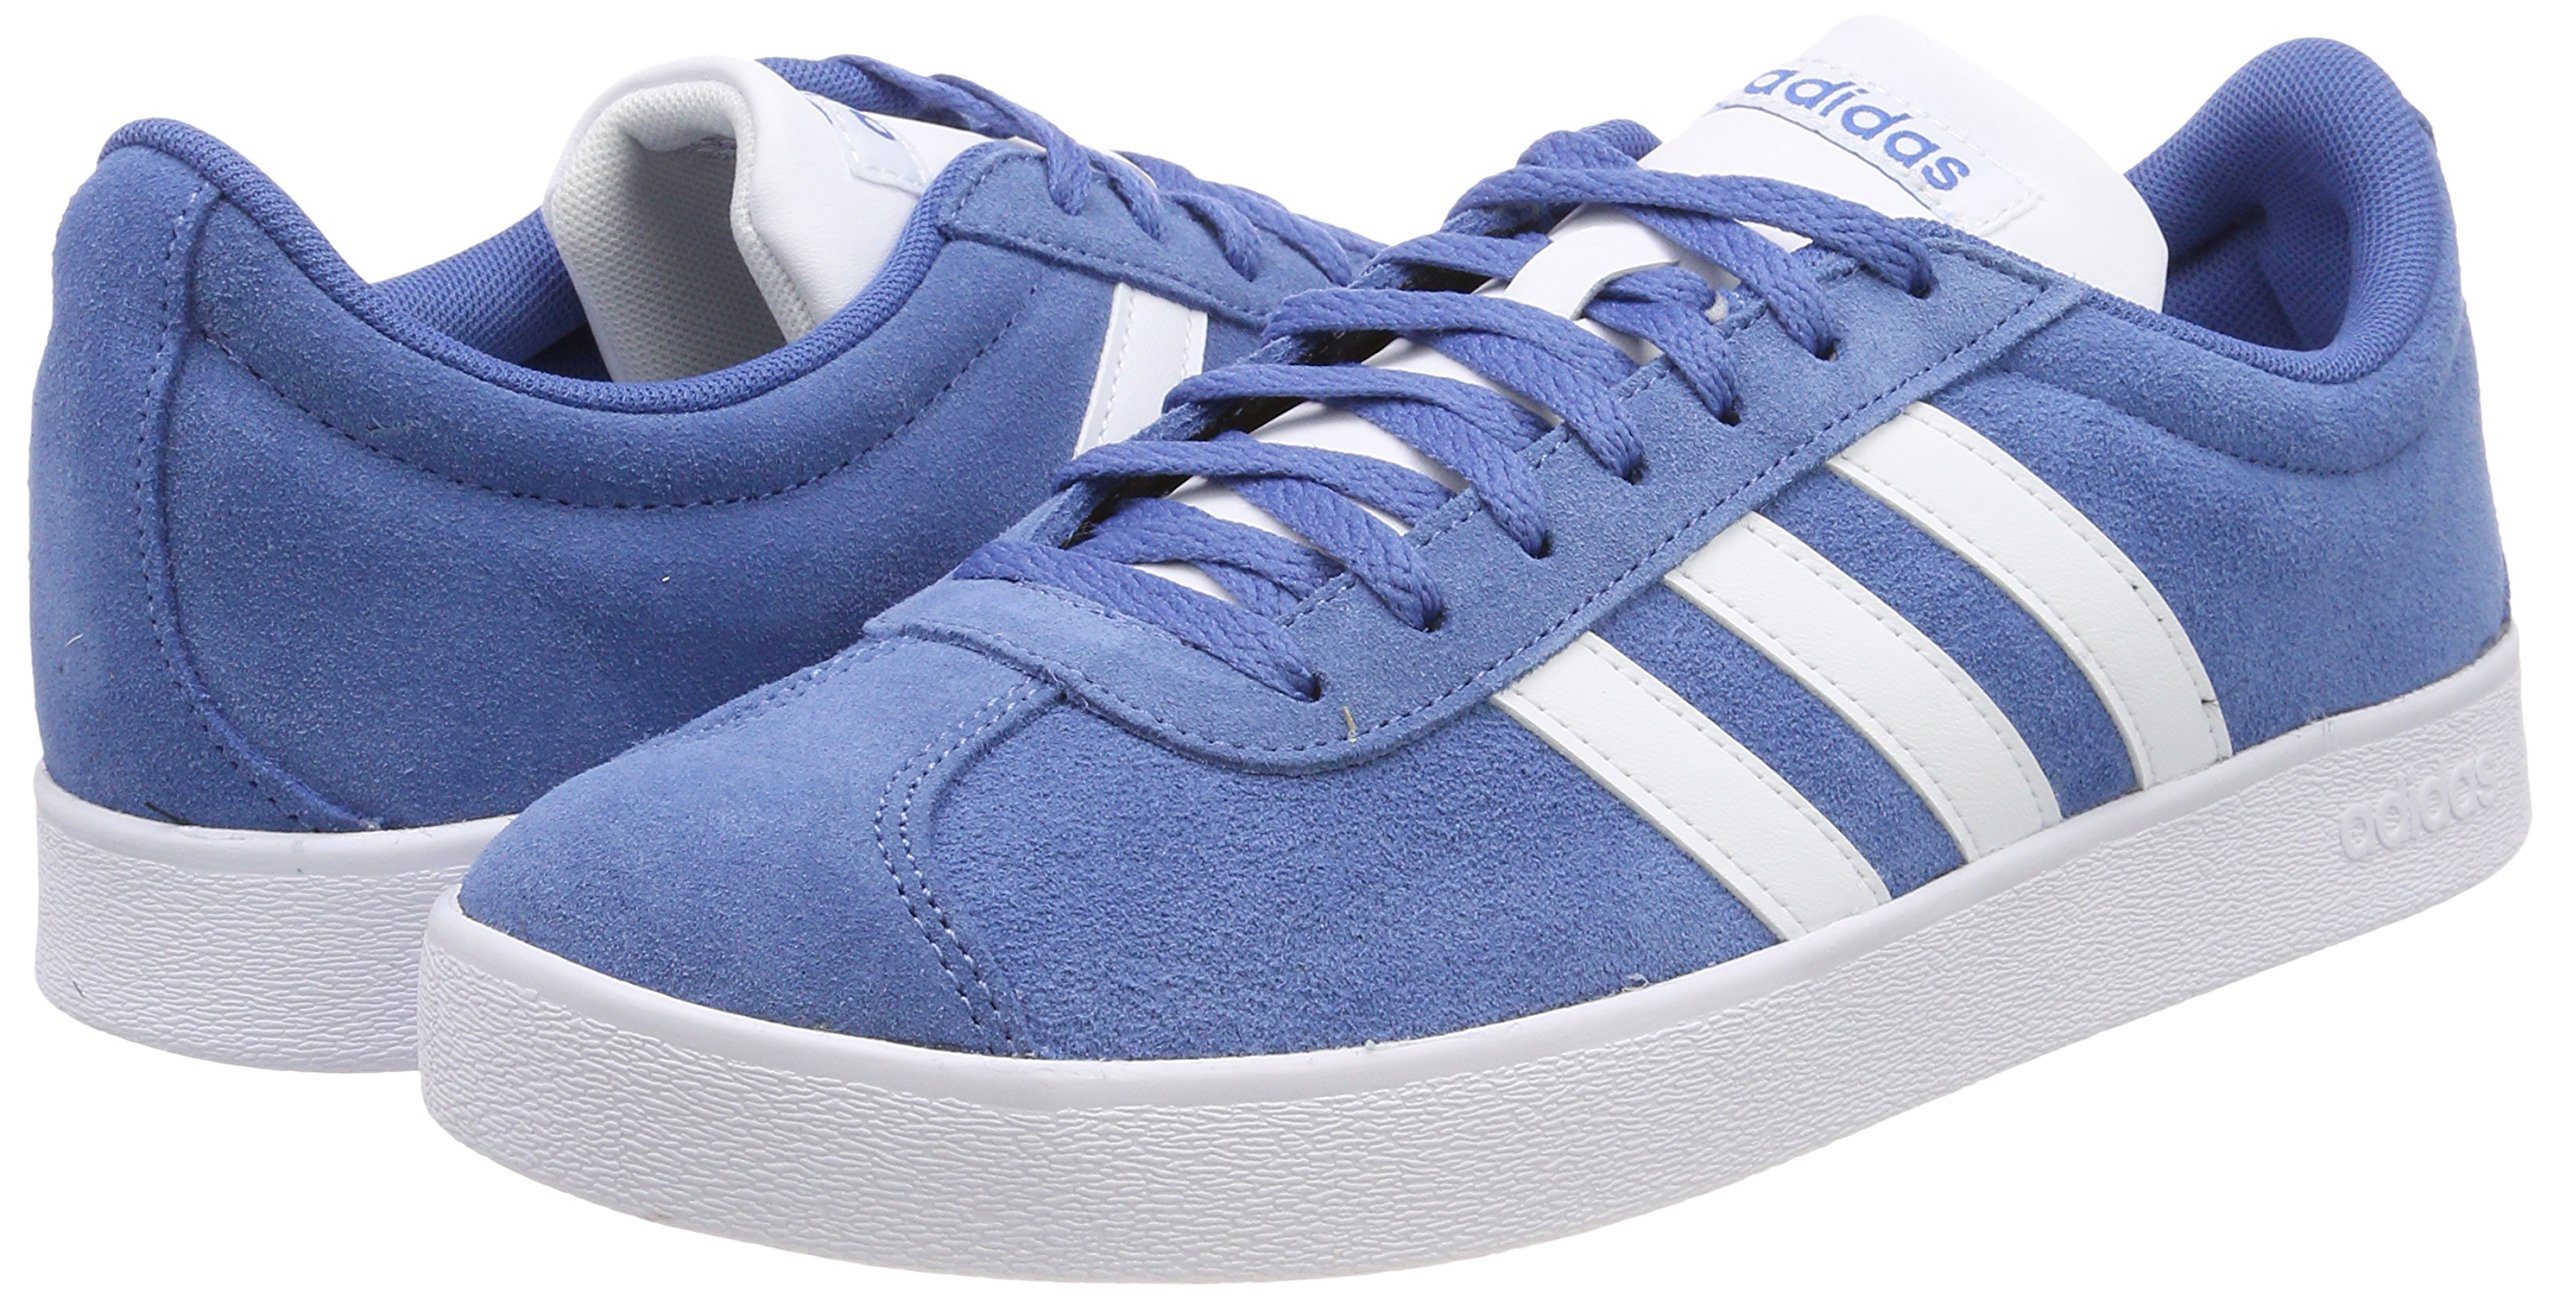 Lubricar Anécdota guerra  adidas Men's Vl Court 2.0 Fitness Shoes- Buy Online in Guadeloupe at  guadeloupe.desertcart.com. ProductId : 60243991.